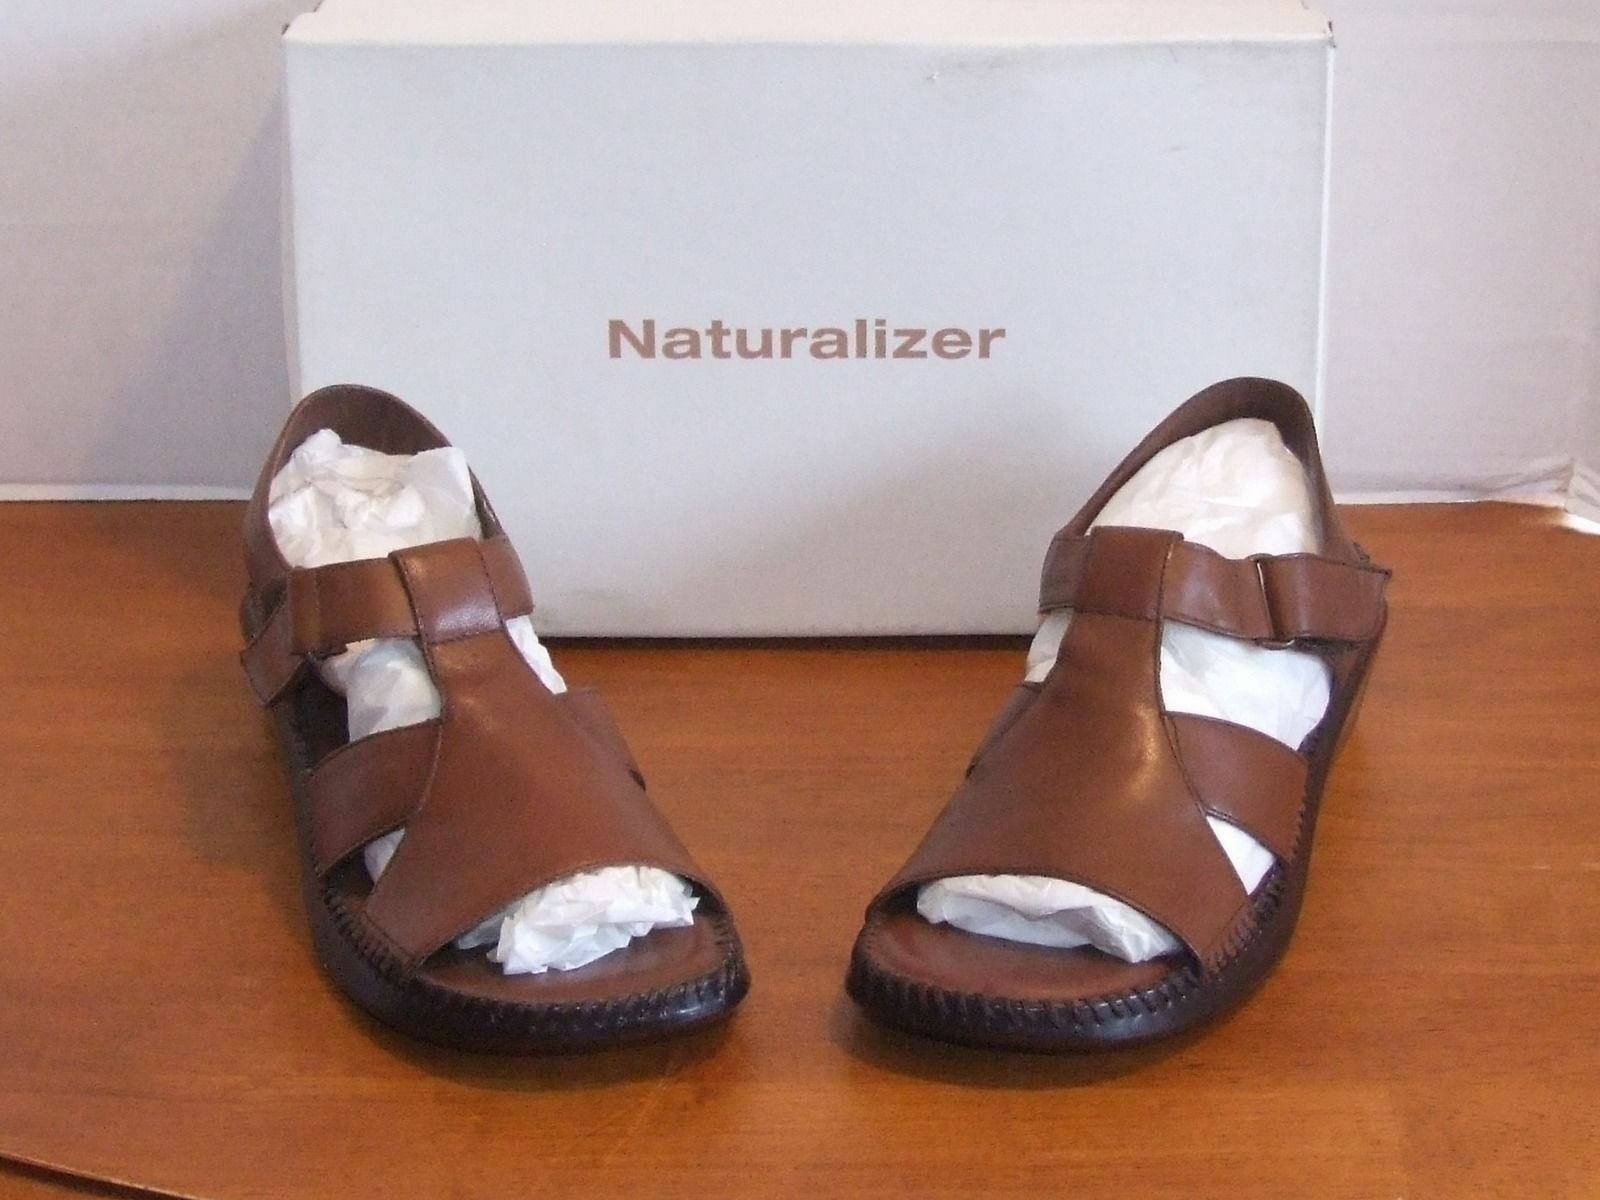 Naturalizer Limit Tan or White Leather Sandals